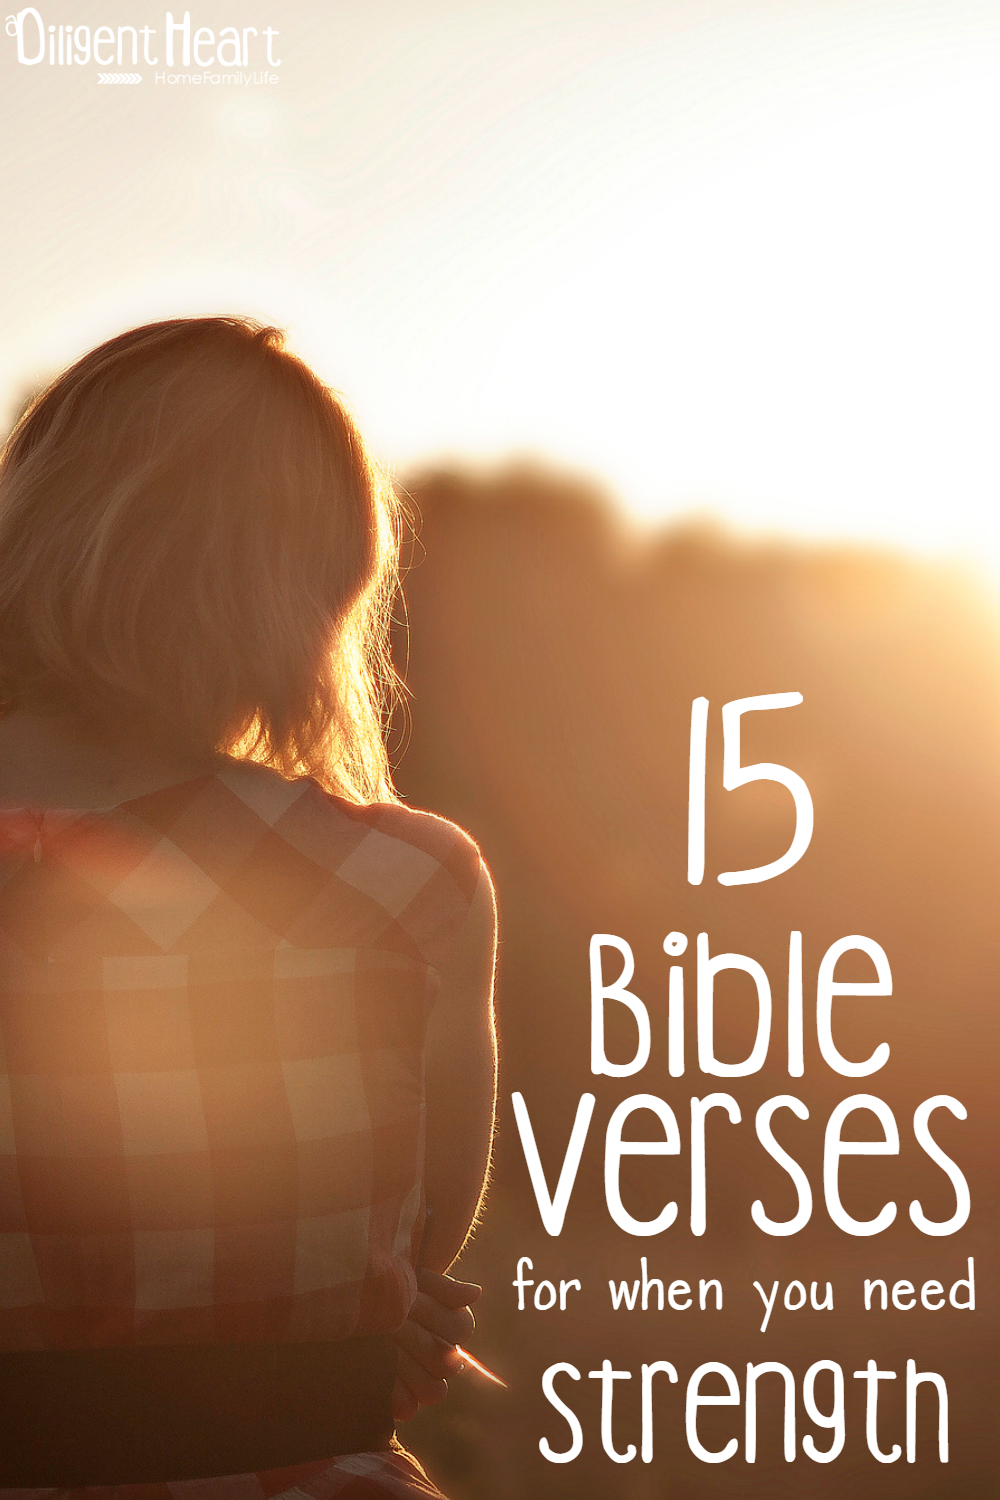 Sometimes challenges make us feel weak. And then, we forget to lean on Him for strength throughout the busy and challenges. In those moments, we need a reminder that in Him is where we can find our strength. Here are 15 Bible Verses for when you need to be reminded of the strength we can find in Him. | adiligentheart.com